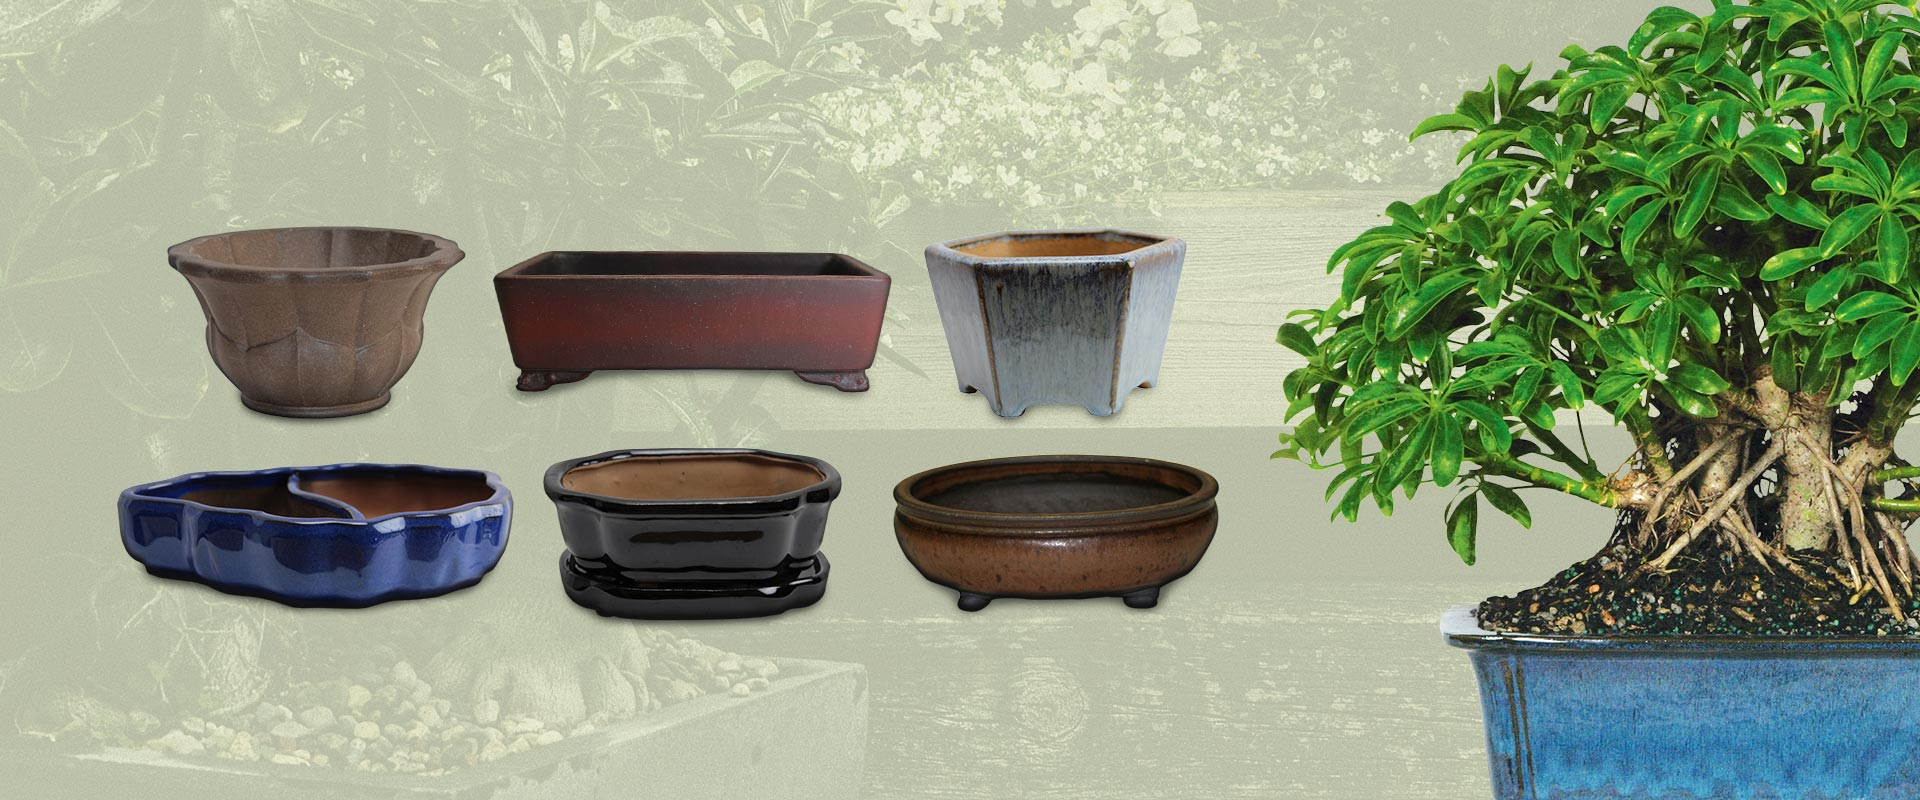 Bonsai Tree Bamboo Plants Indoor Outdoor Pots And Tools